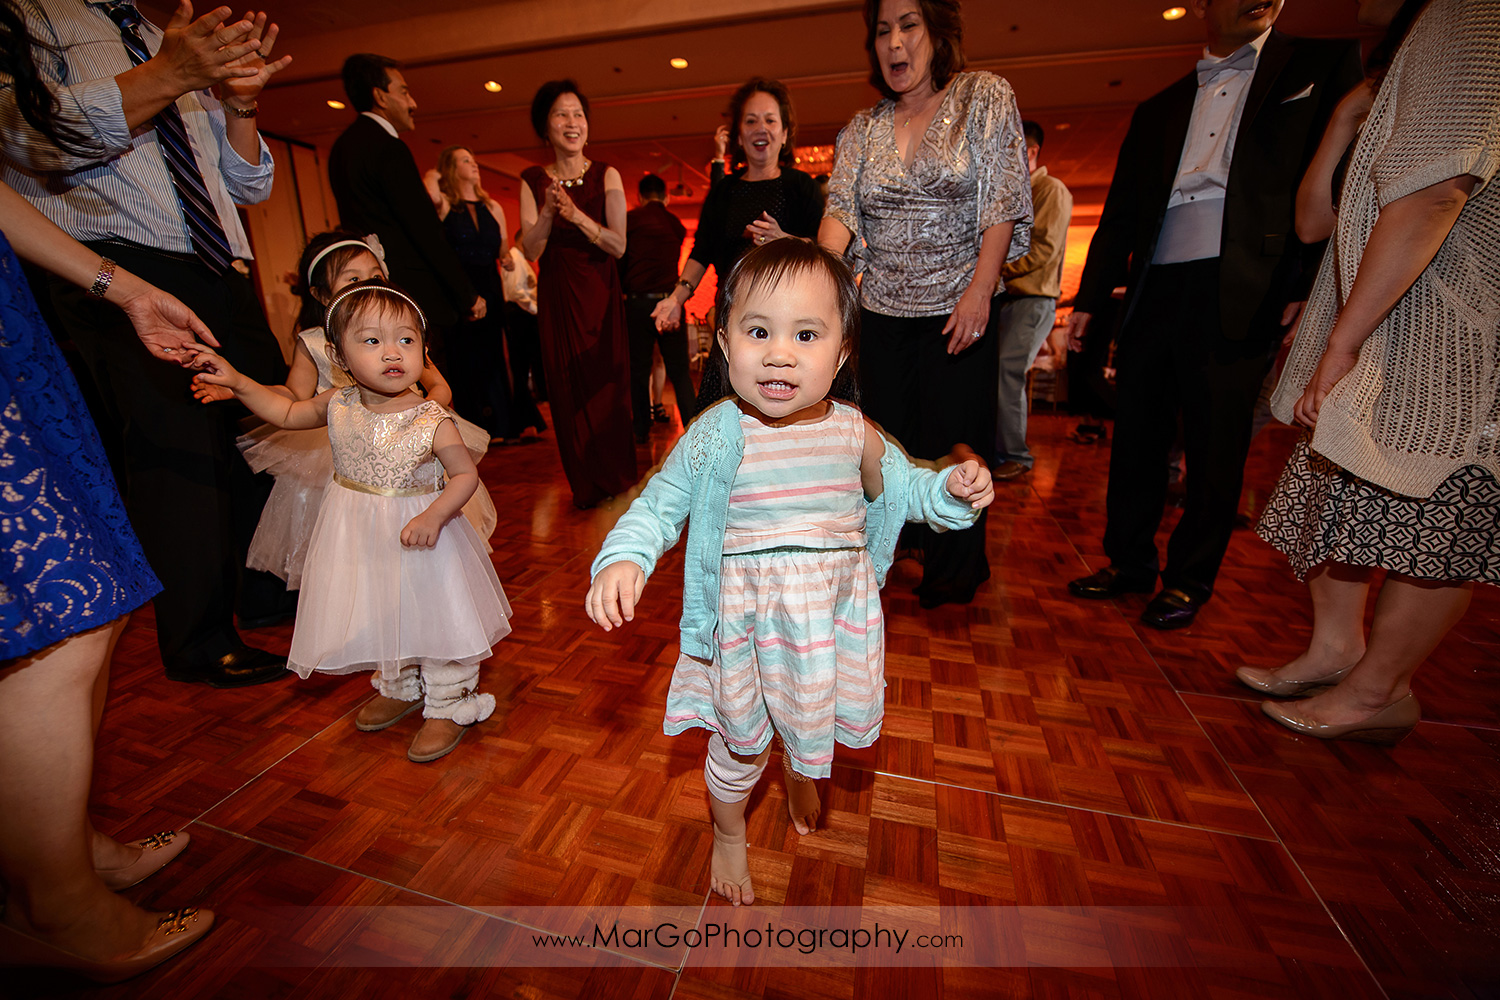 kids on wedding dance floor at Hilton San Francisco Airport Bayfront in Burlingame